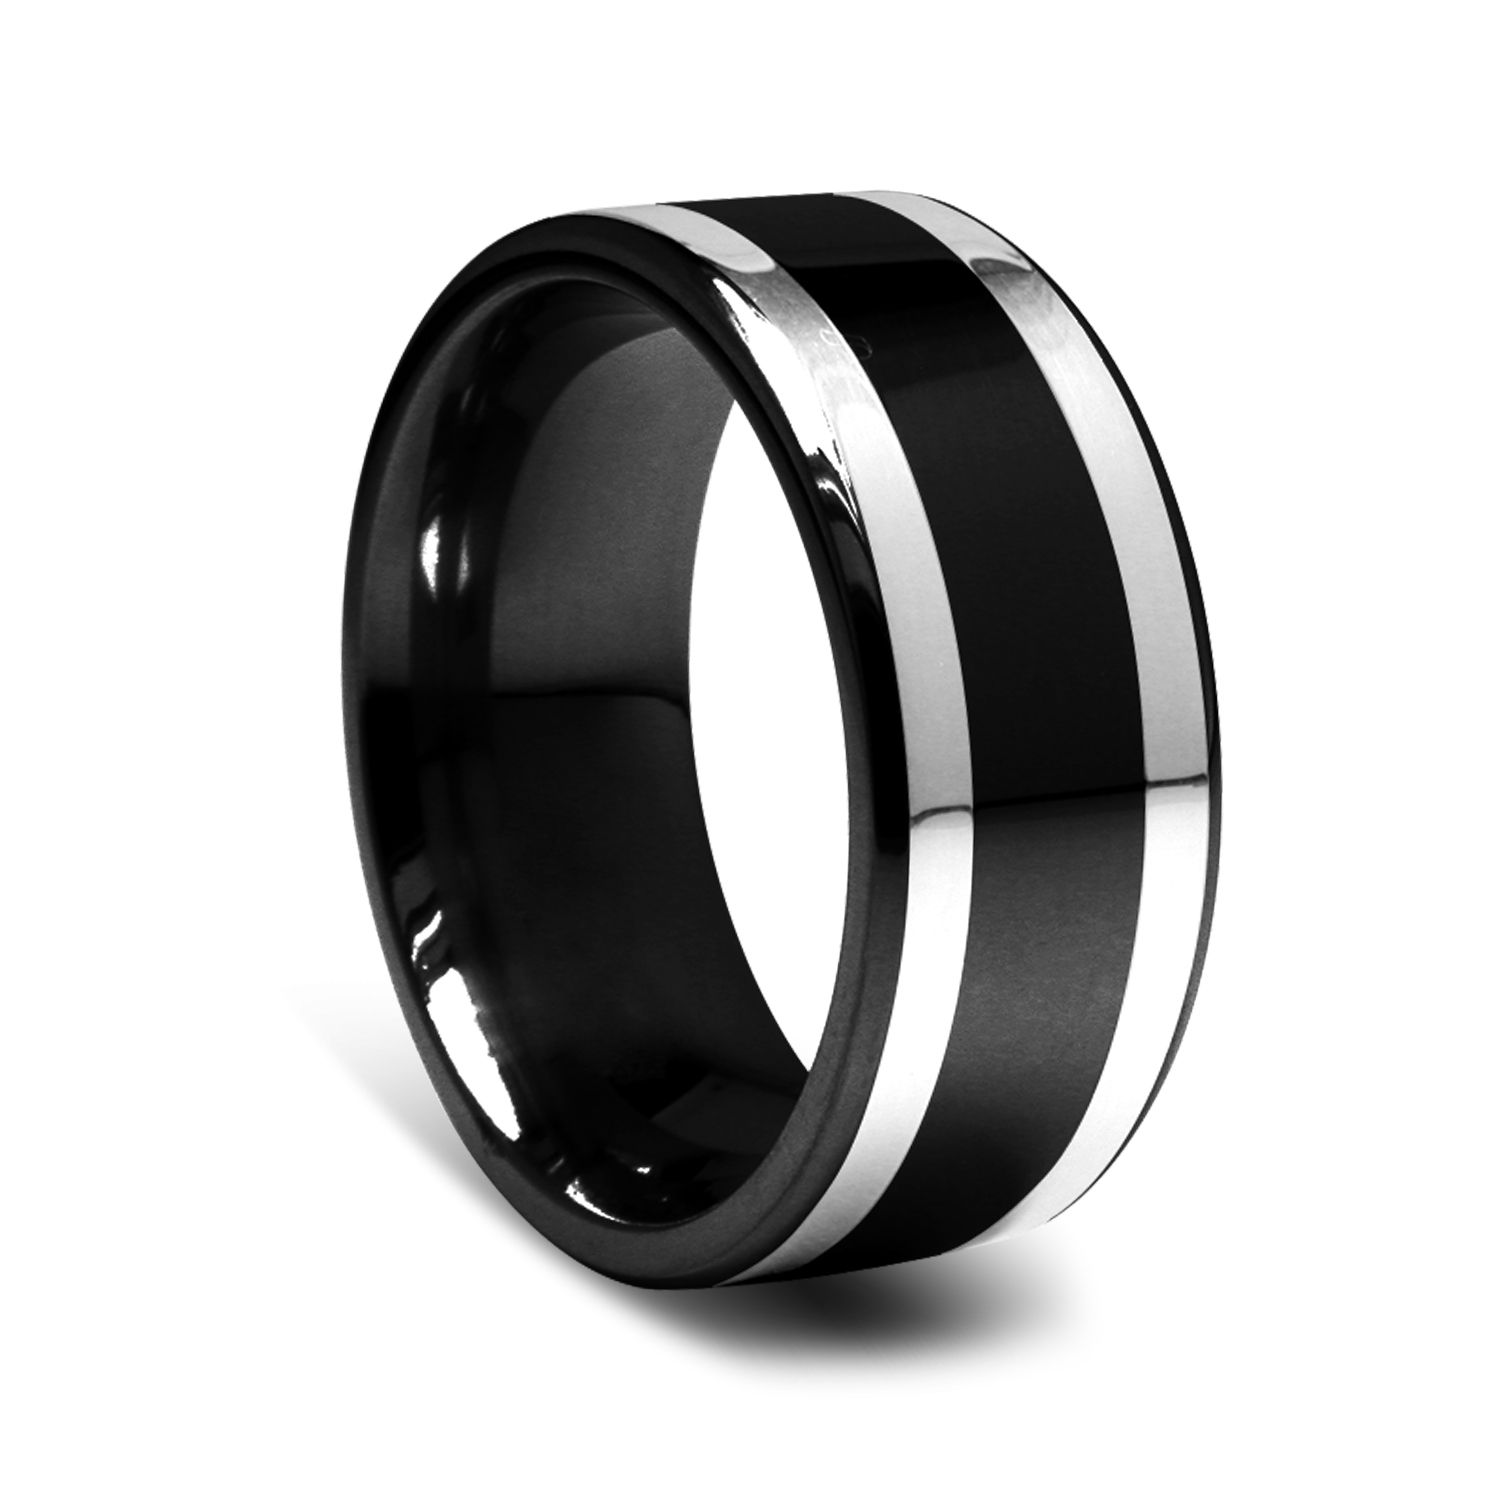 9mm Black Anium Men S Ring With Silver Inlay A Great Look Sleek And Modern Its Real Head Turner